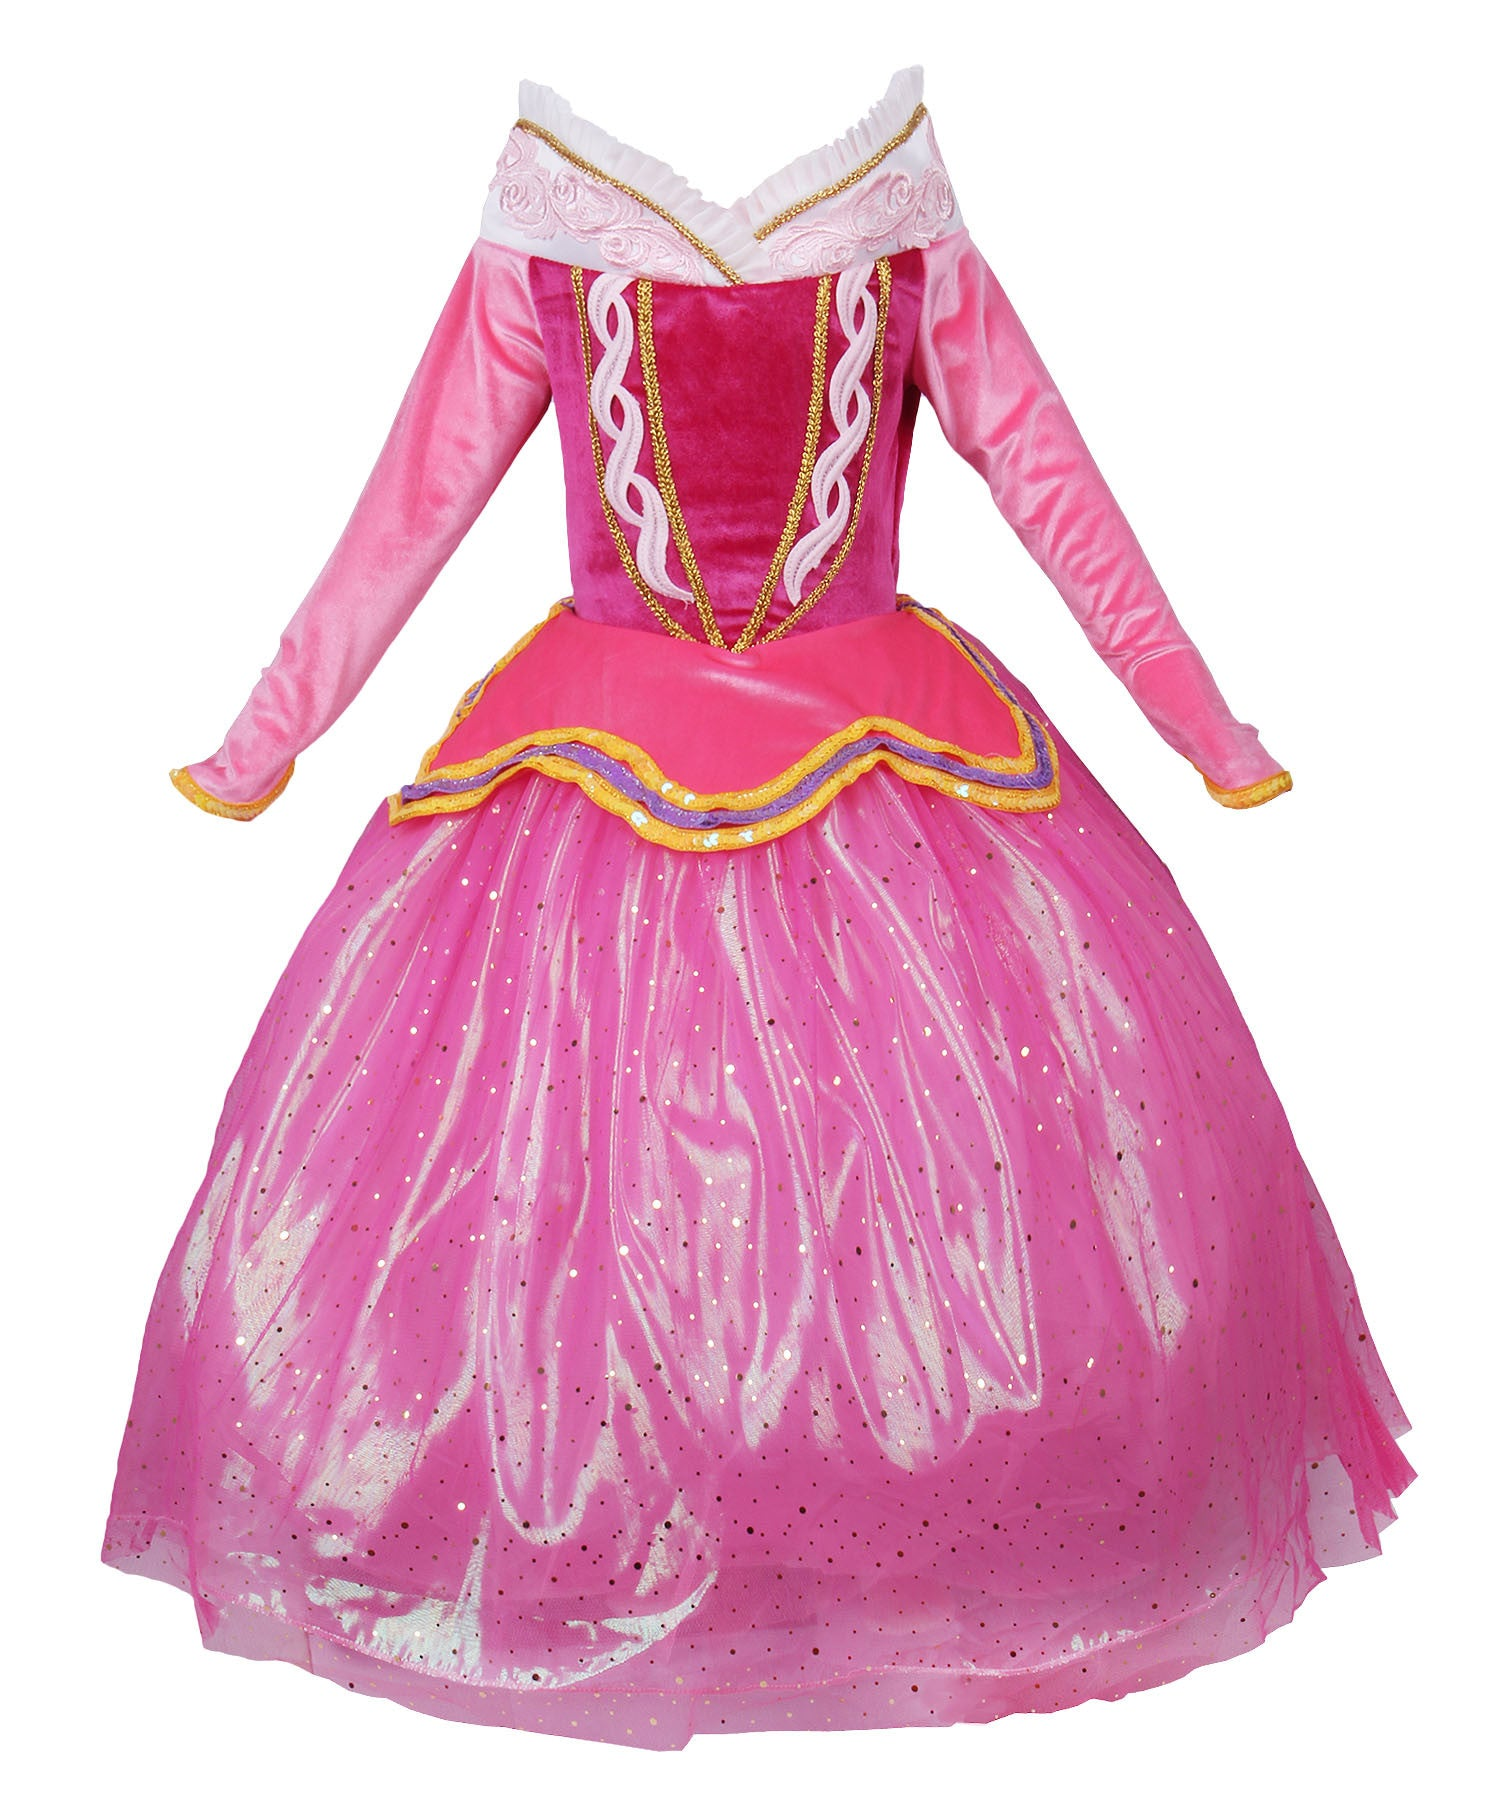 Princess Dress Girl Party Dress Ceremony Fancy Costume – JerrisApparel